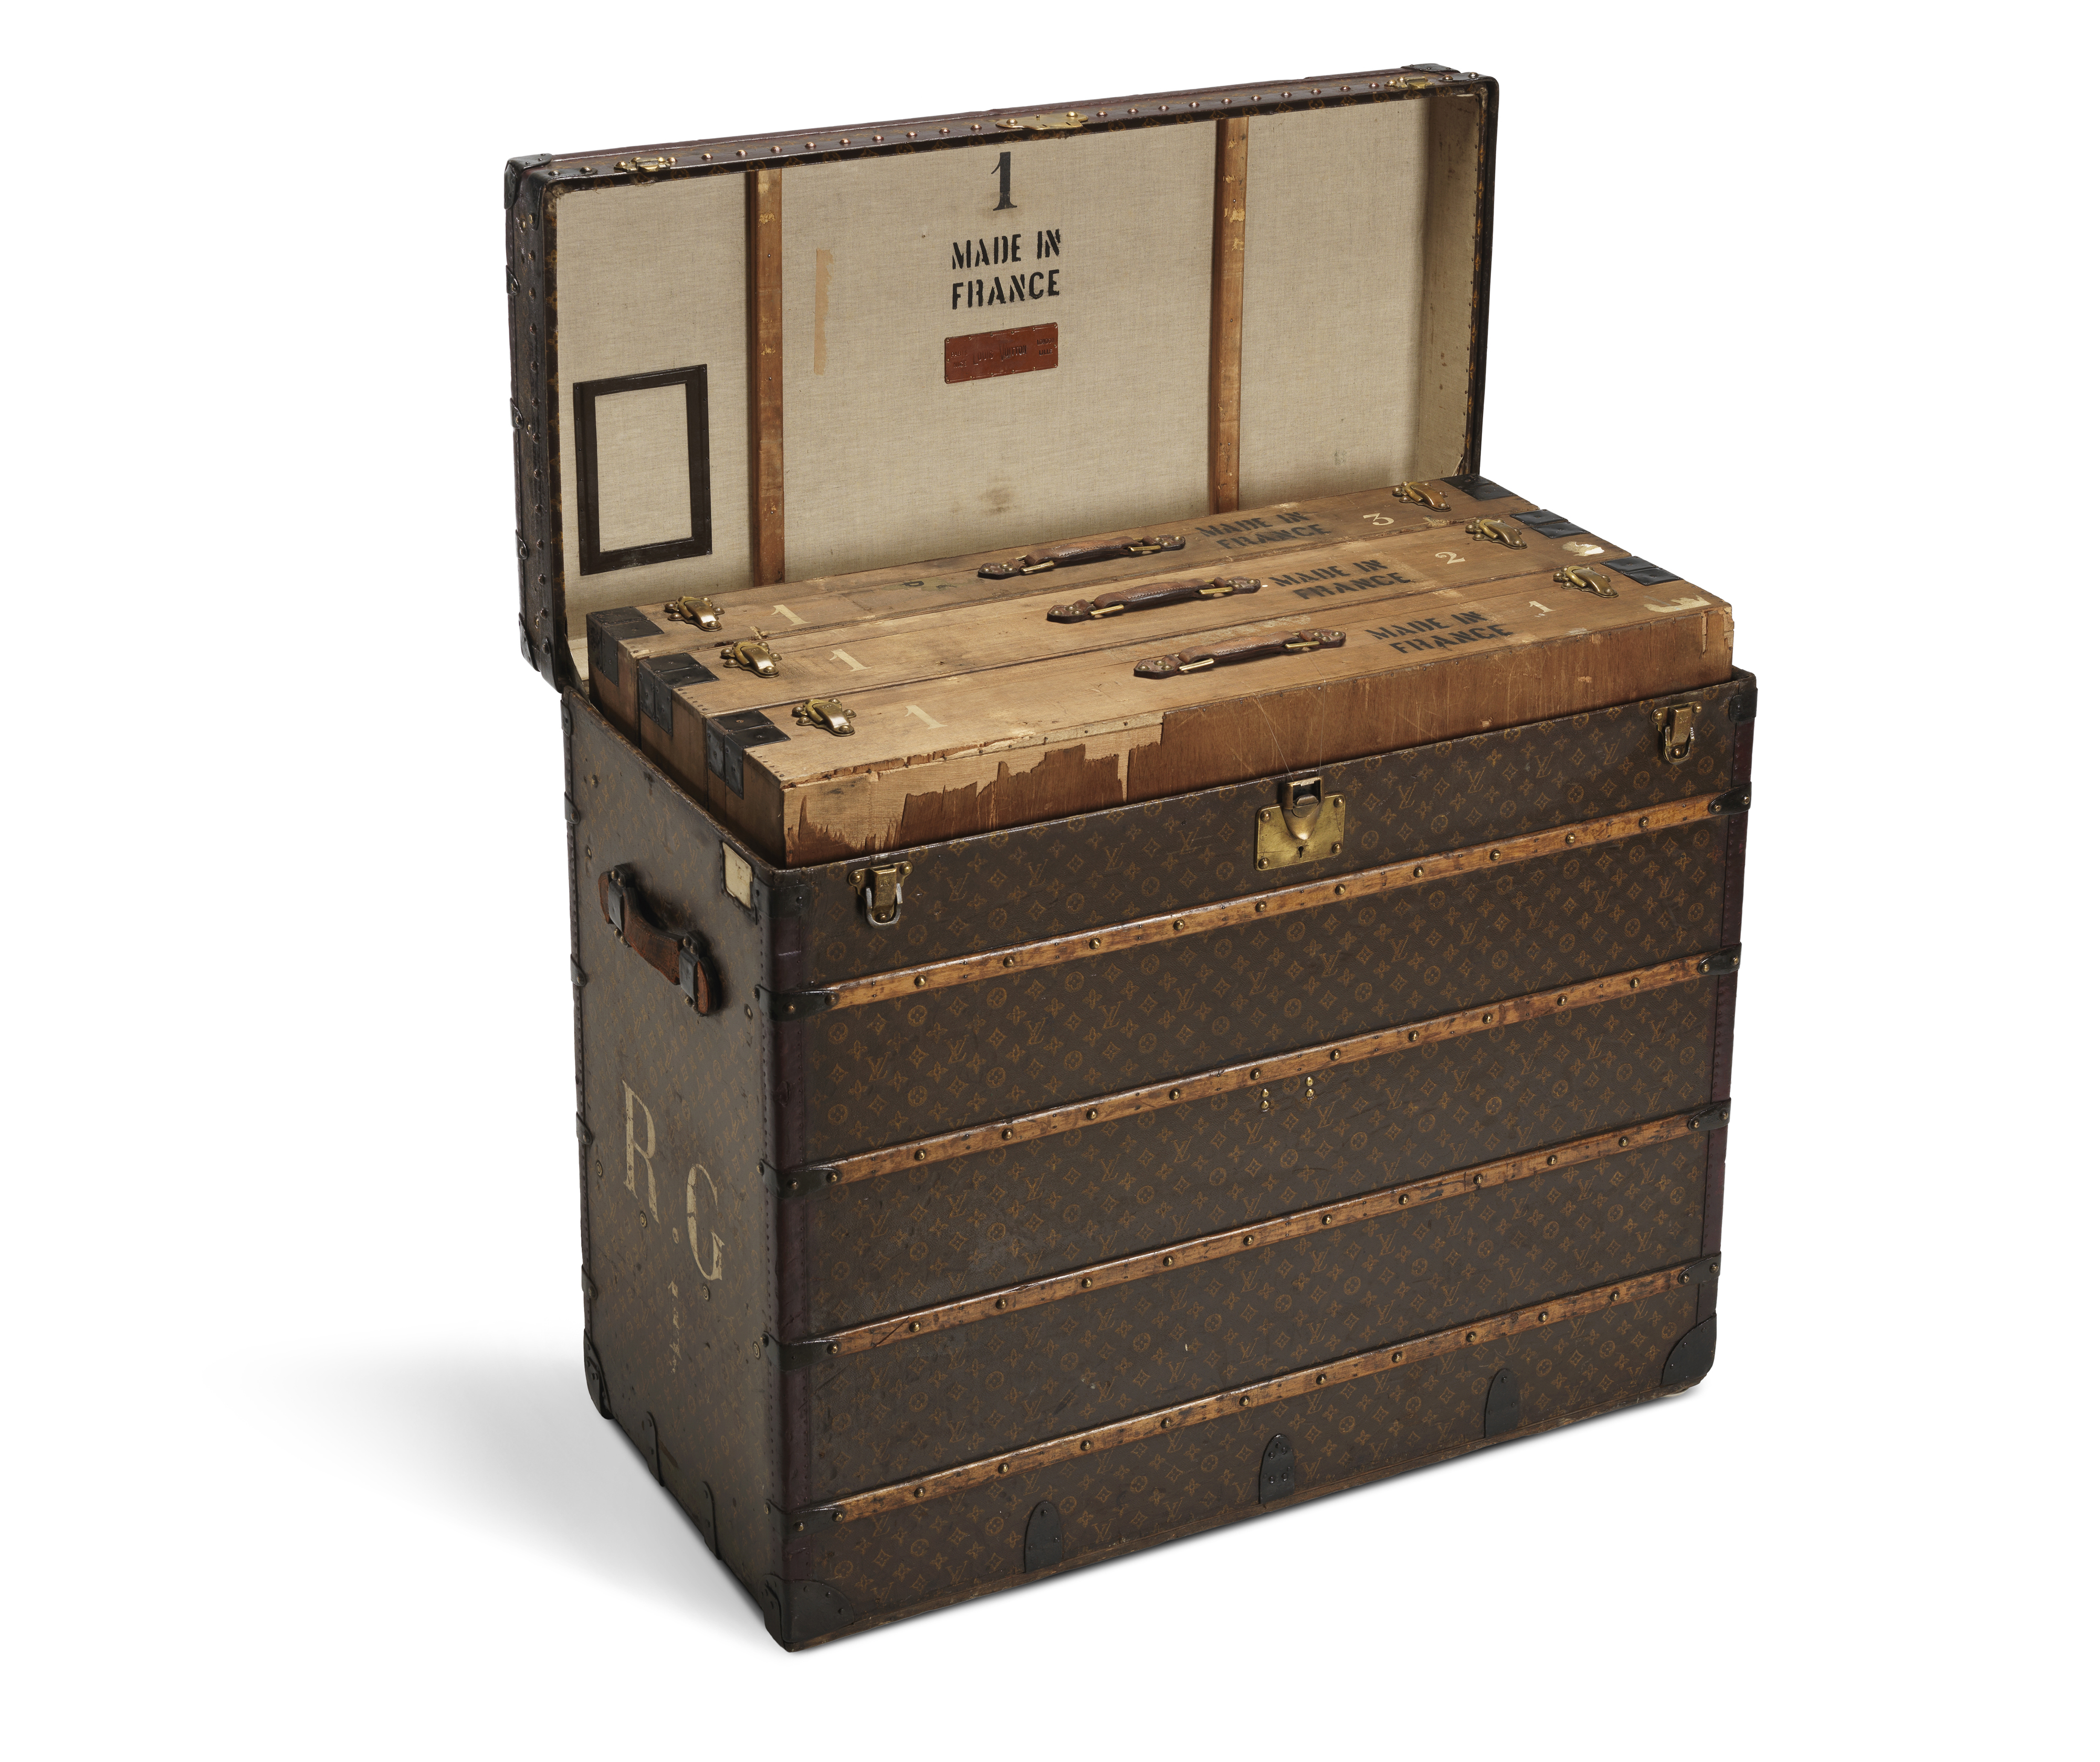 cb40f9a6600 Think of all the Braques and Picassos that have seen the inside of this  trunk! Photograph courtesy of Louis Vuitton.